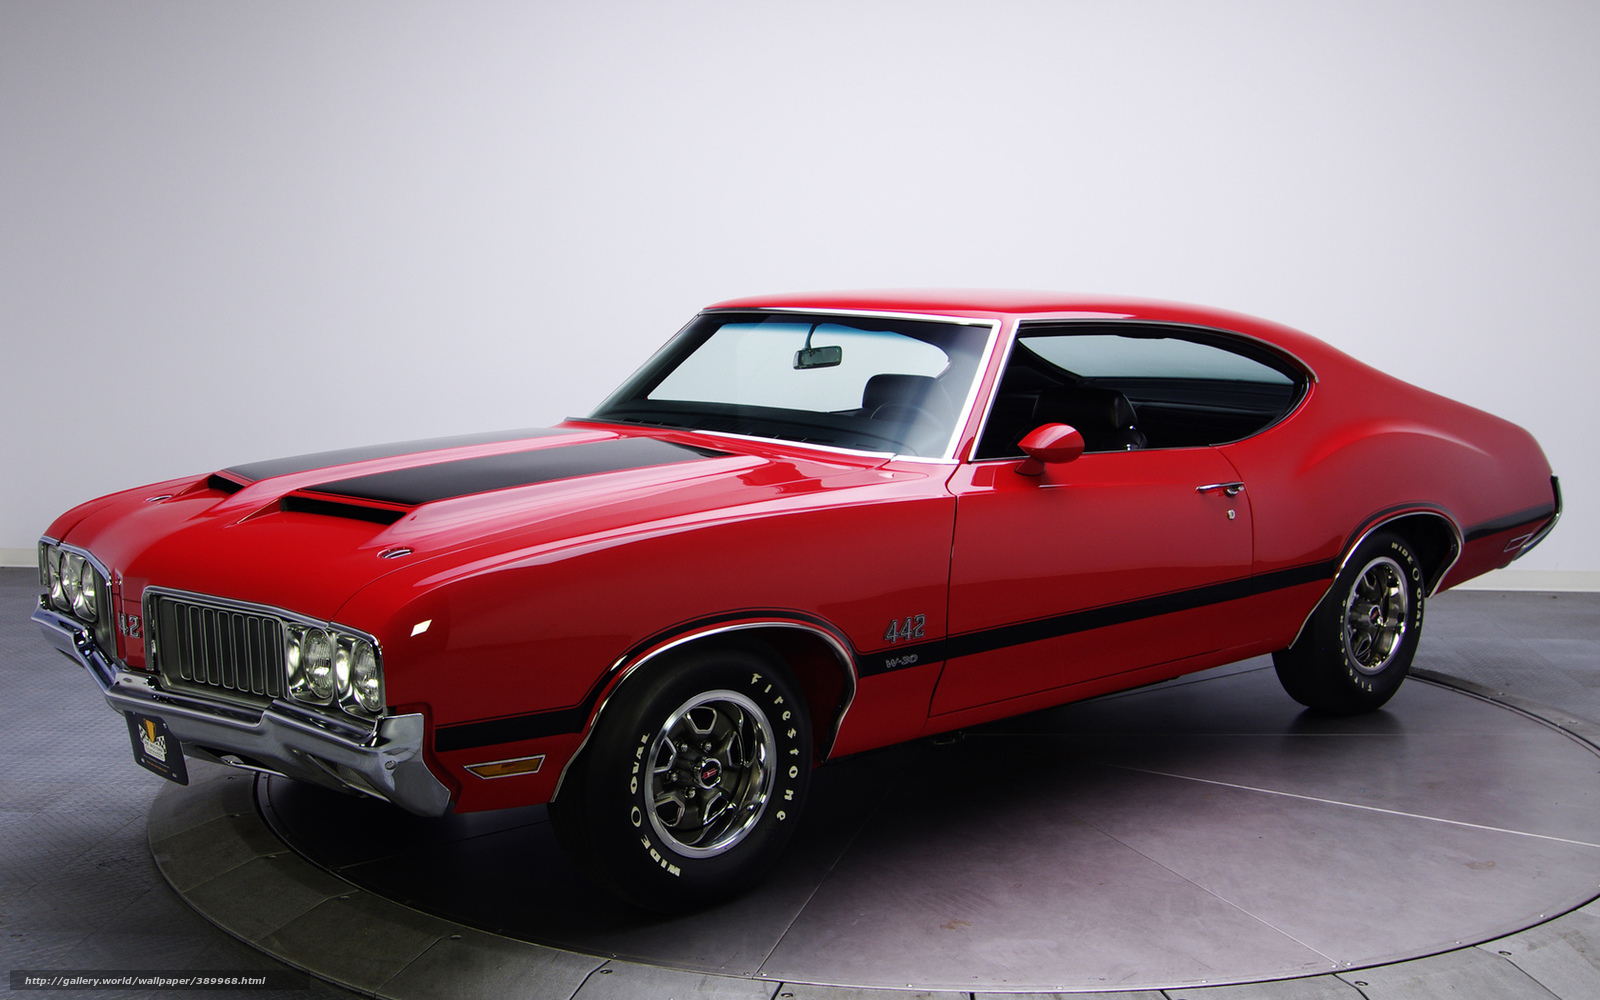 [49+] Free Muscle Car Wallpaper Screensavers On